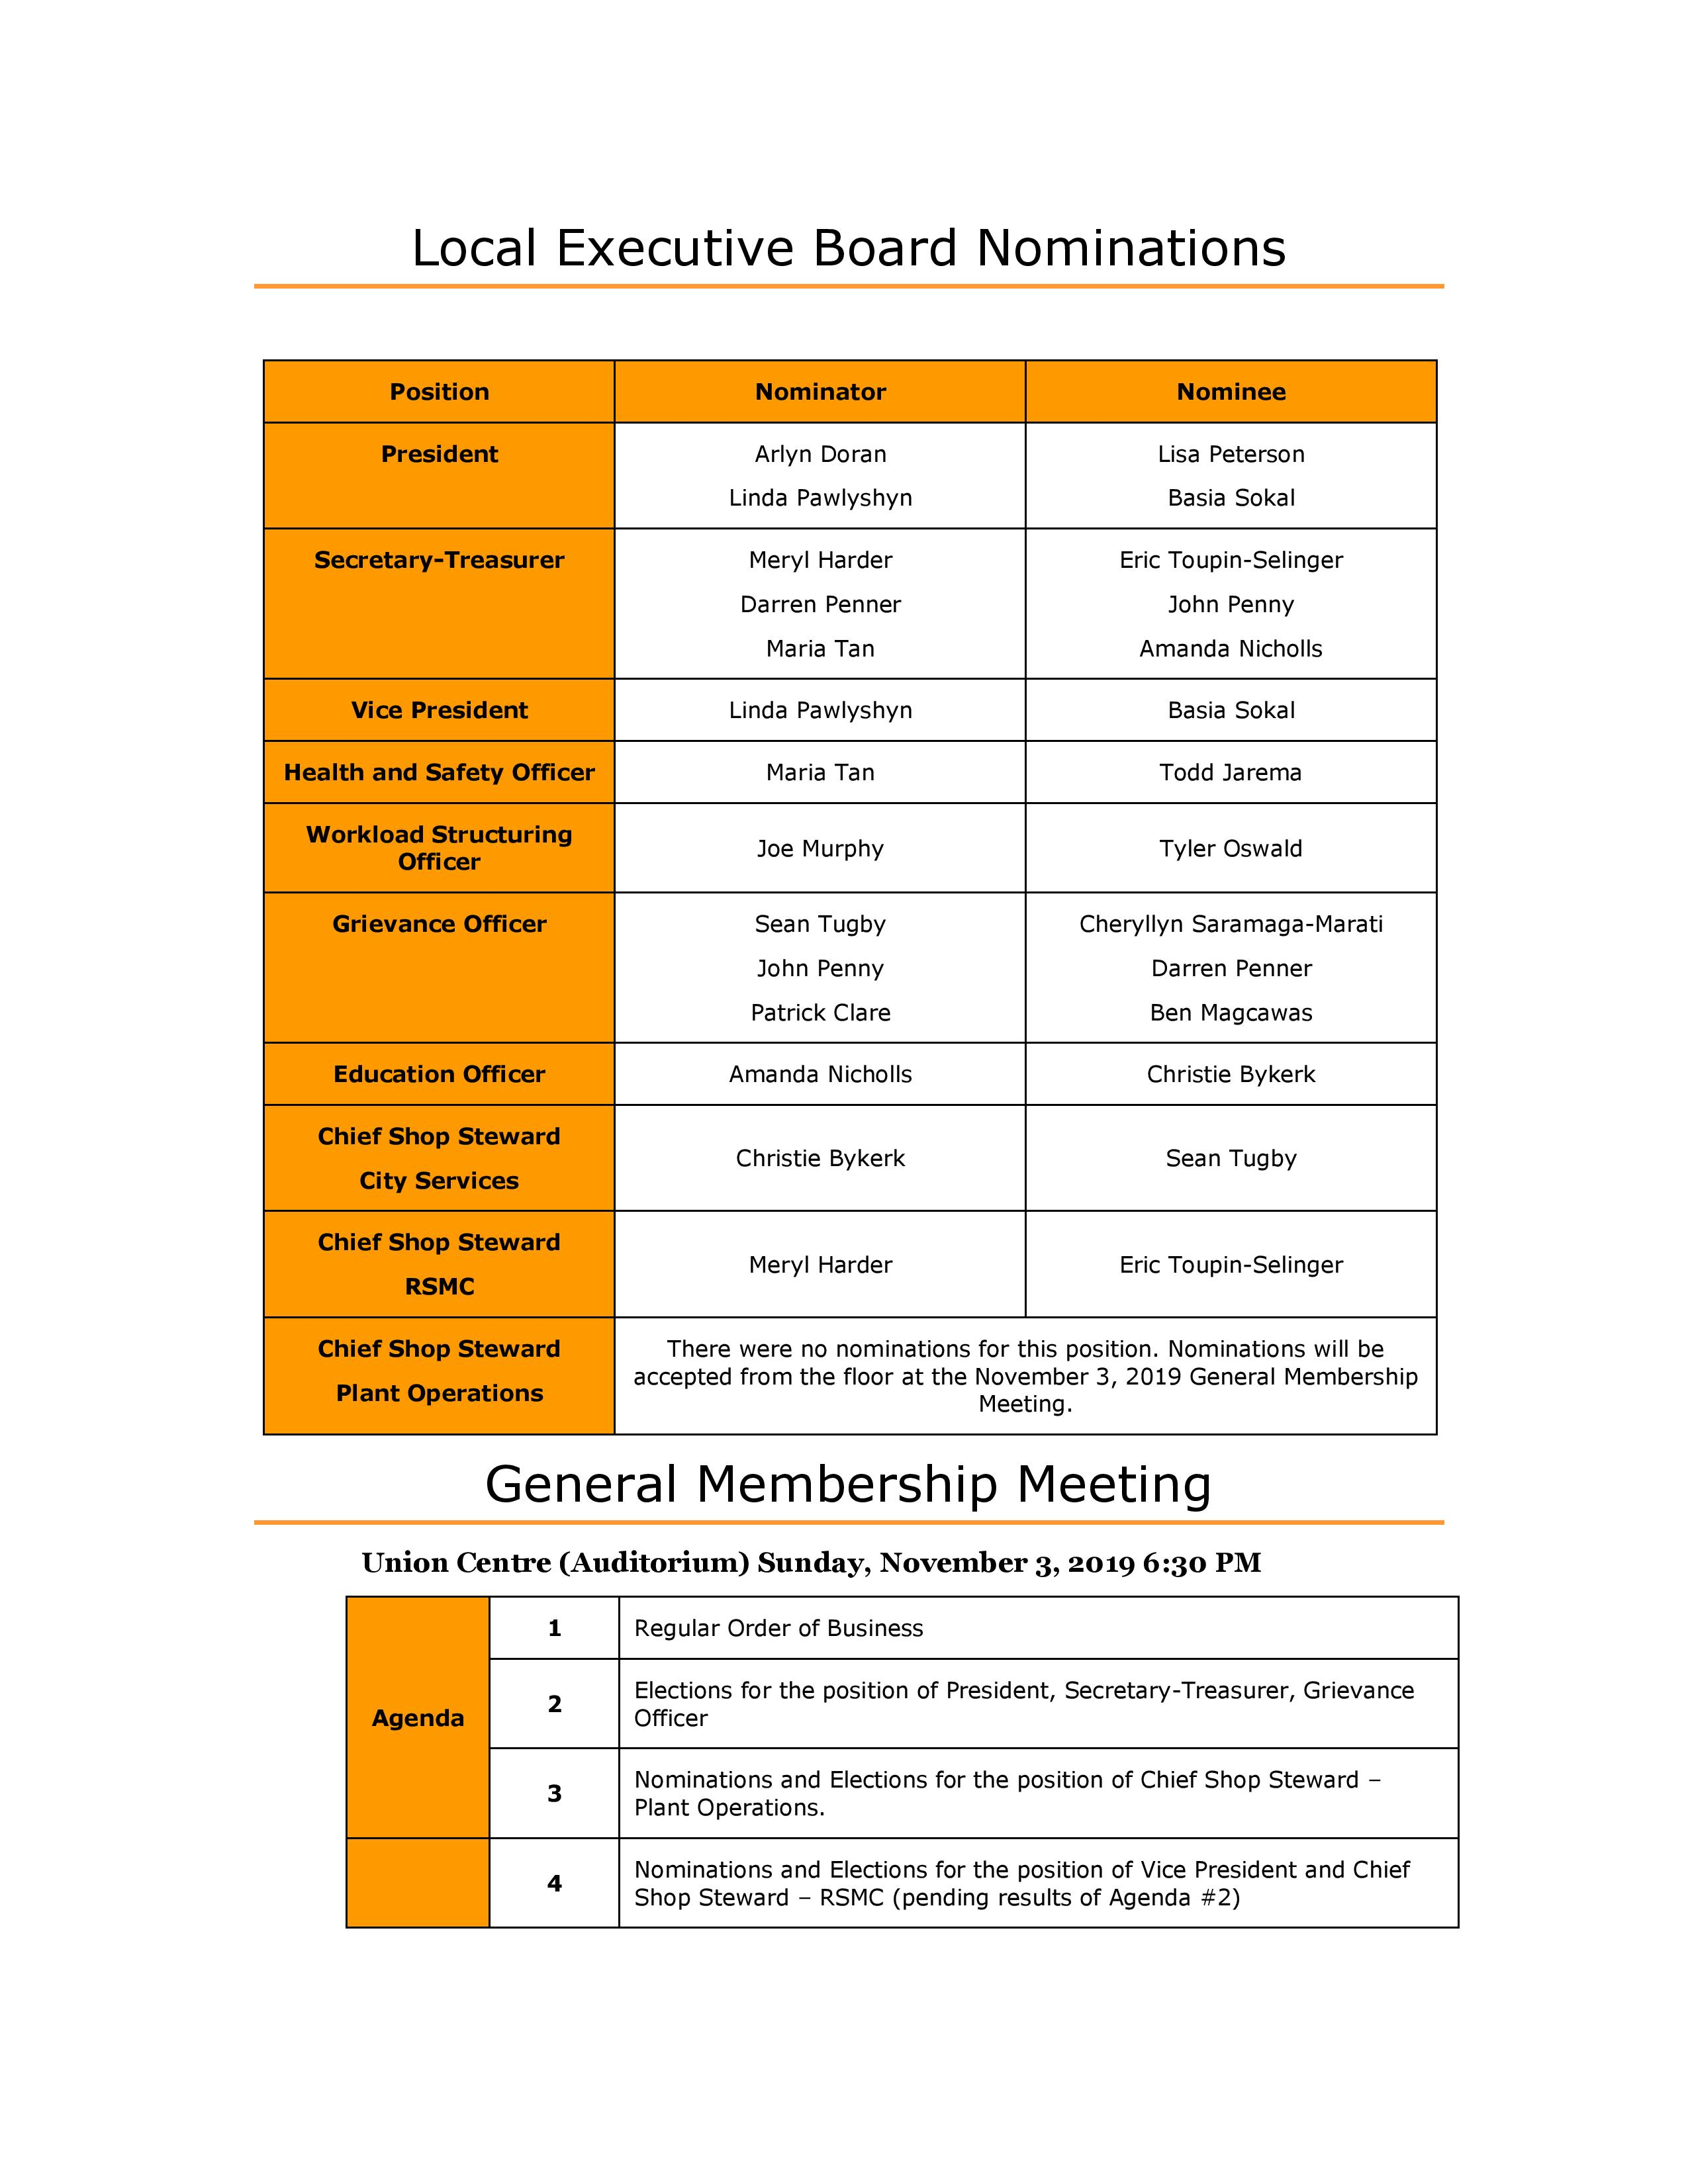 General Membership Meeting and Elections @ Union Centre